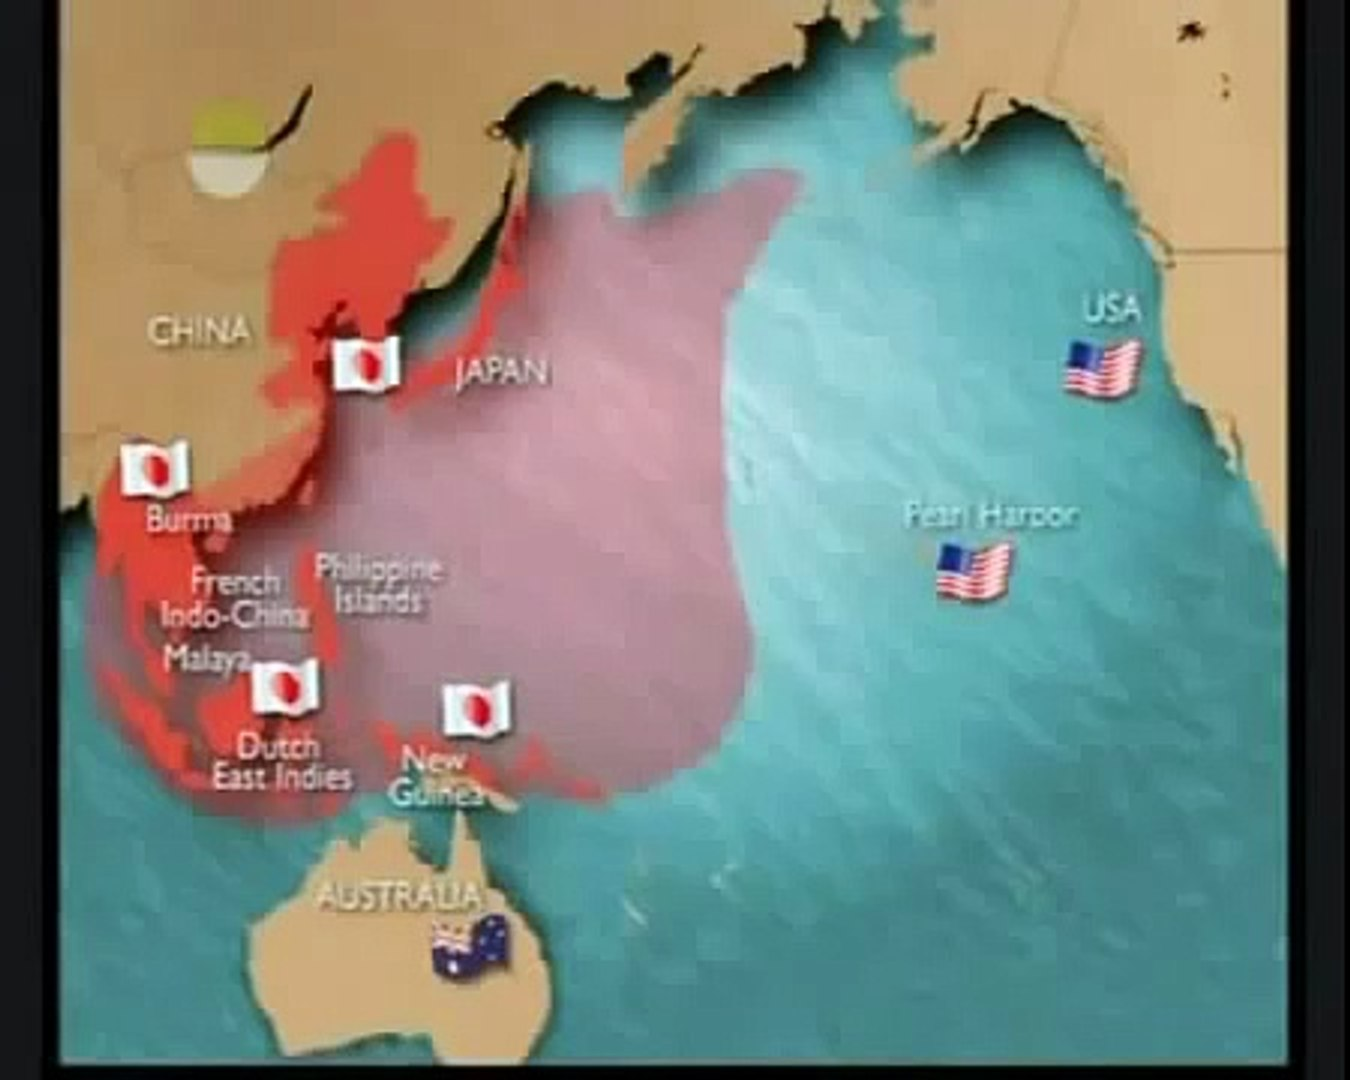 SECRET WEAPONS OF JAPAN - WORLD WAR II - Discovery History Military (full documentary)